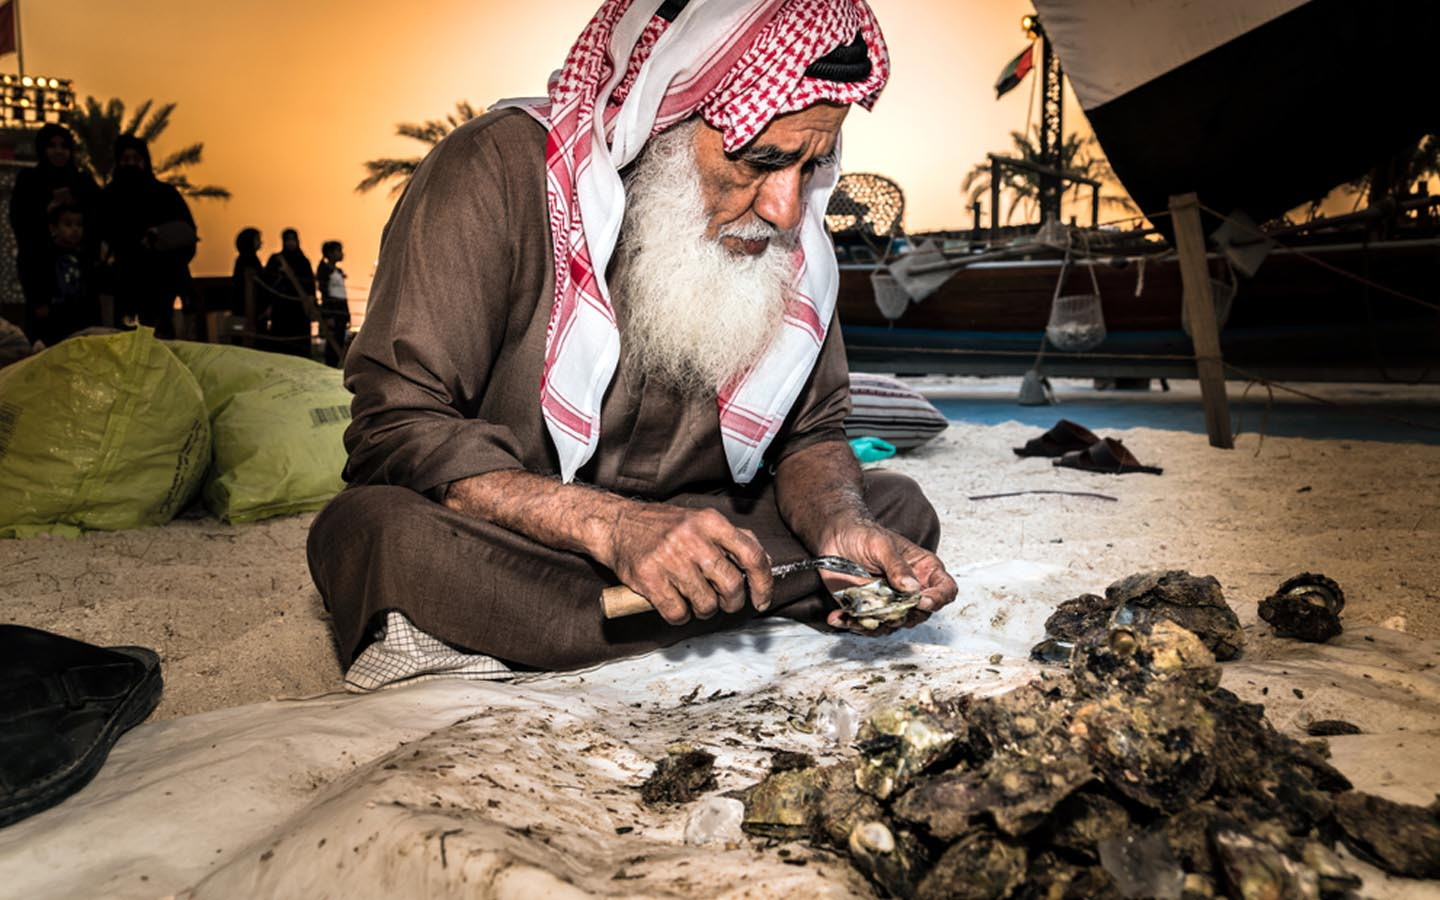 Emirati man taking out pearls from oysters